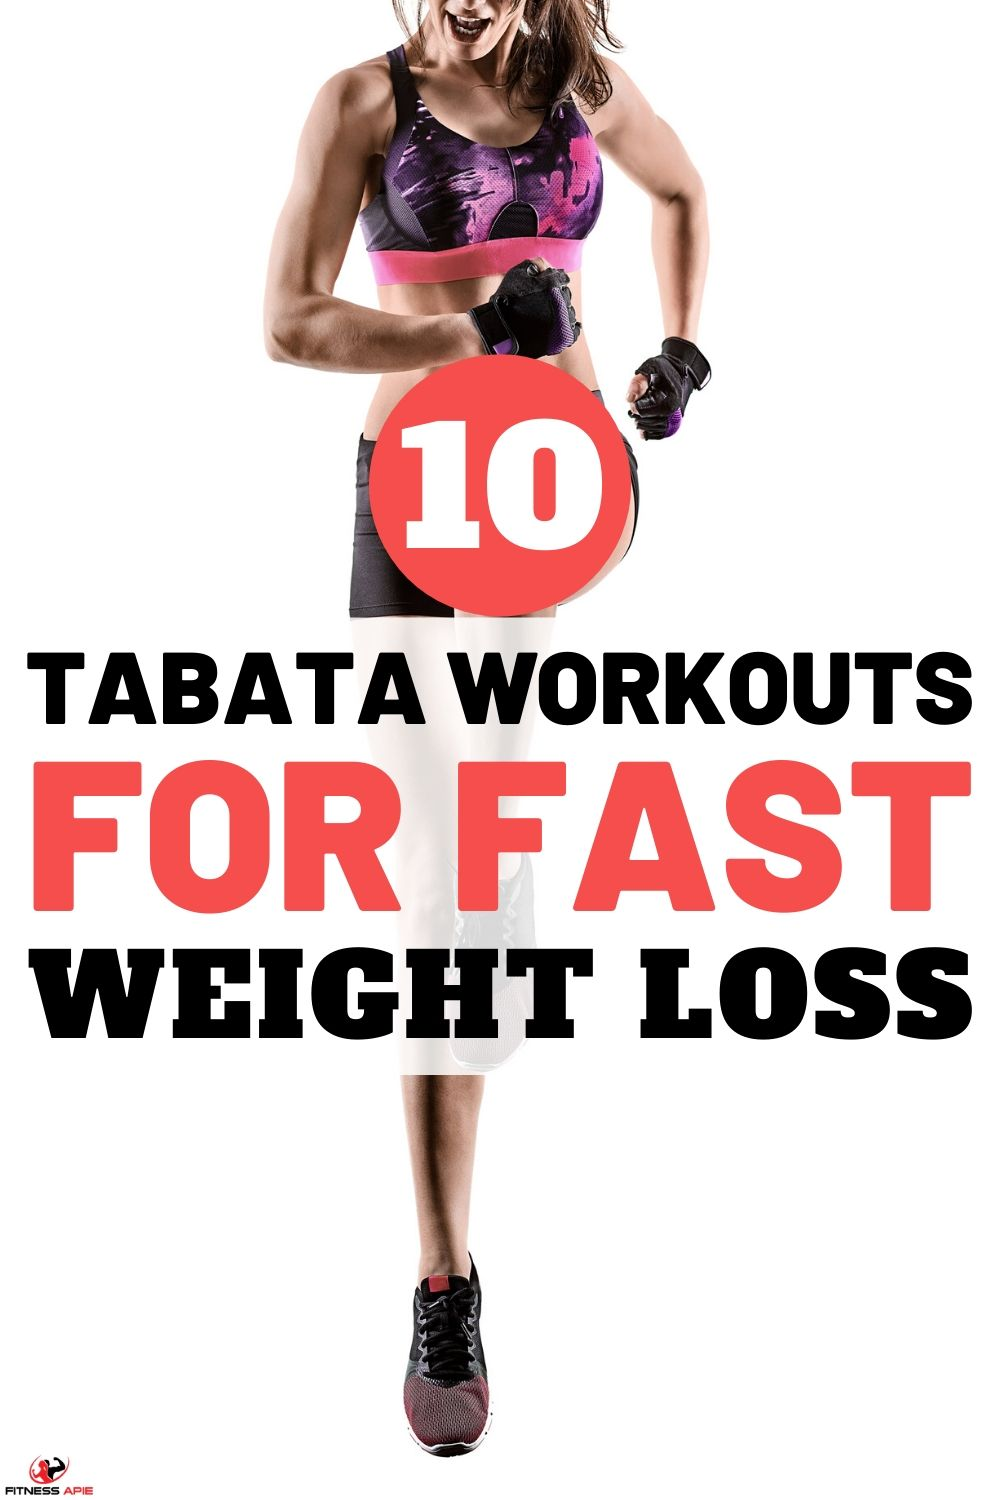 10 Tabata Workouts For Fast Weight Loss